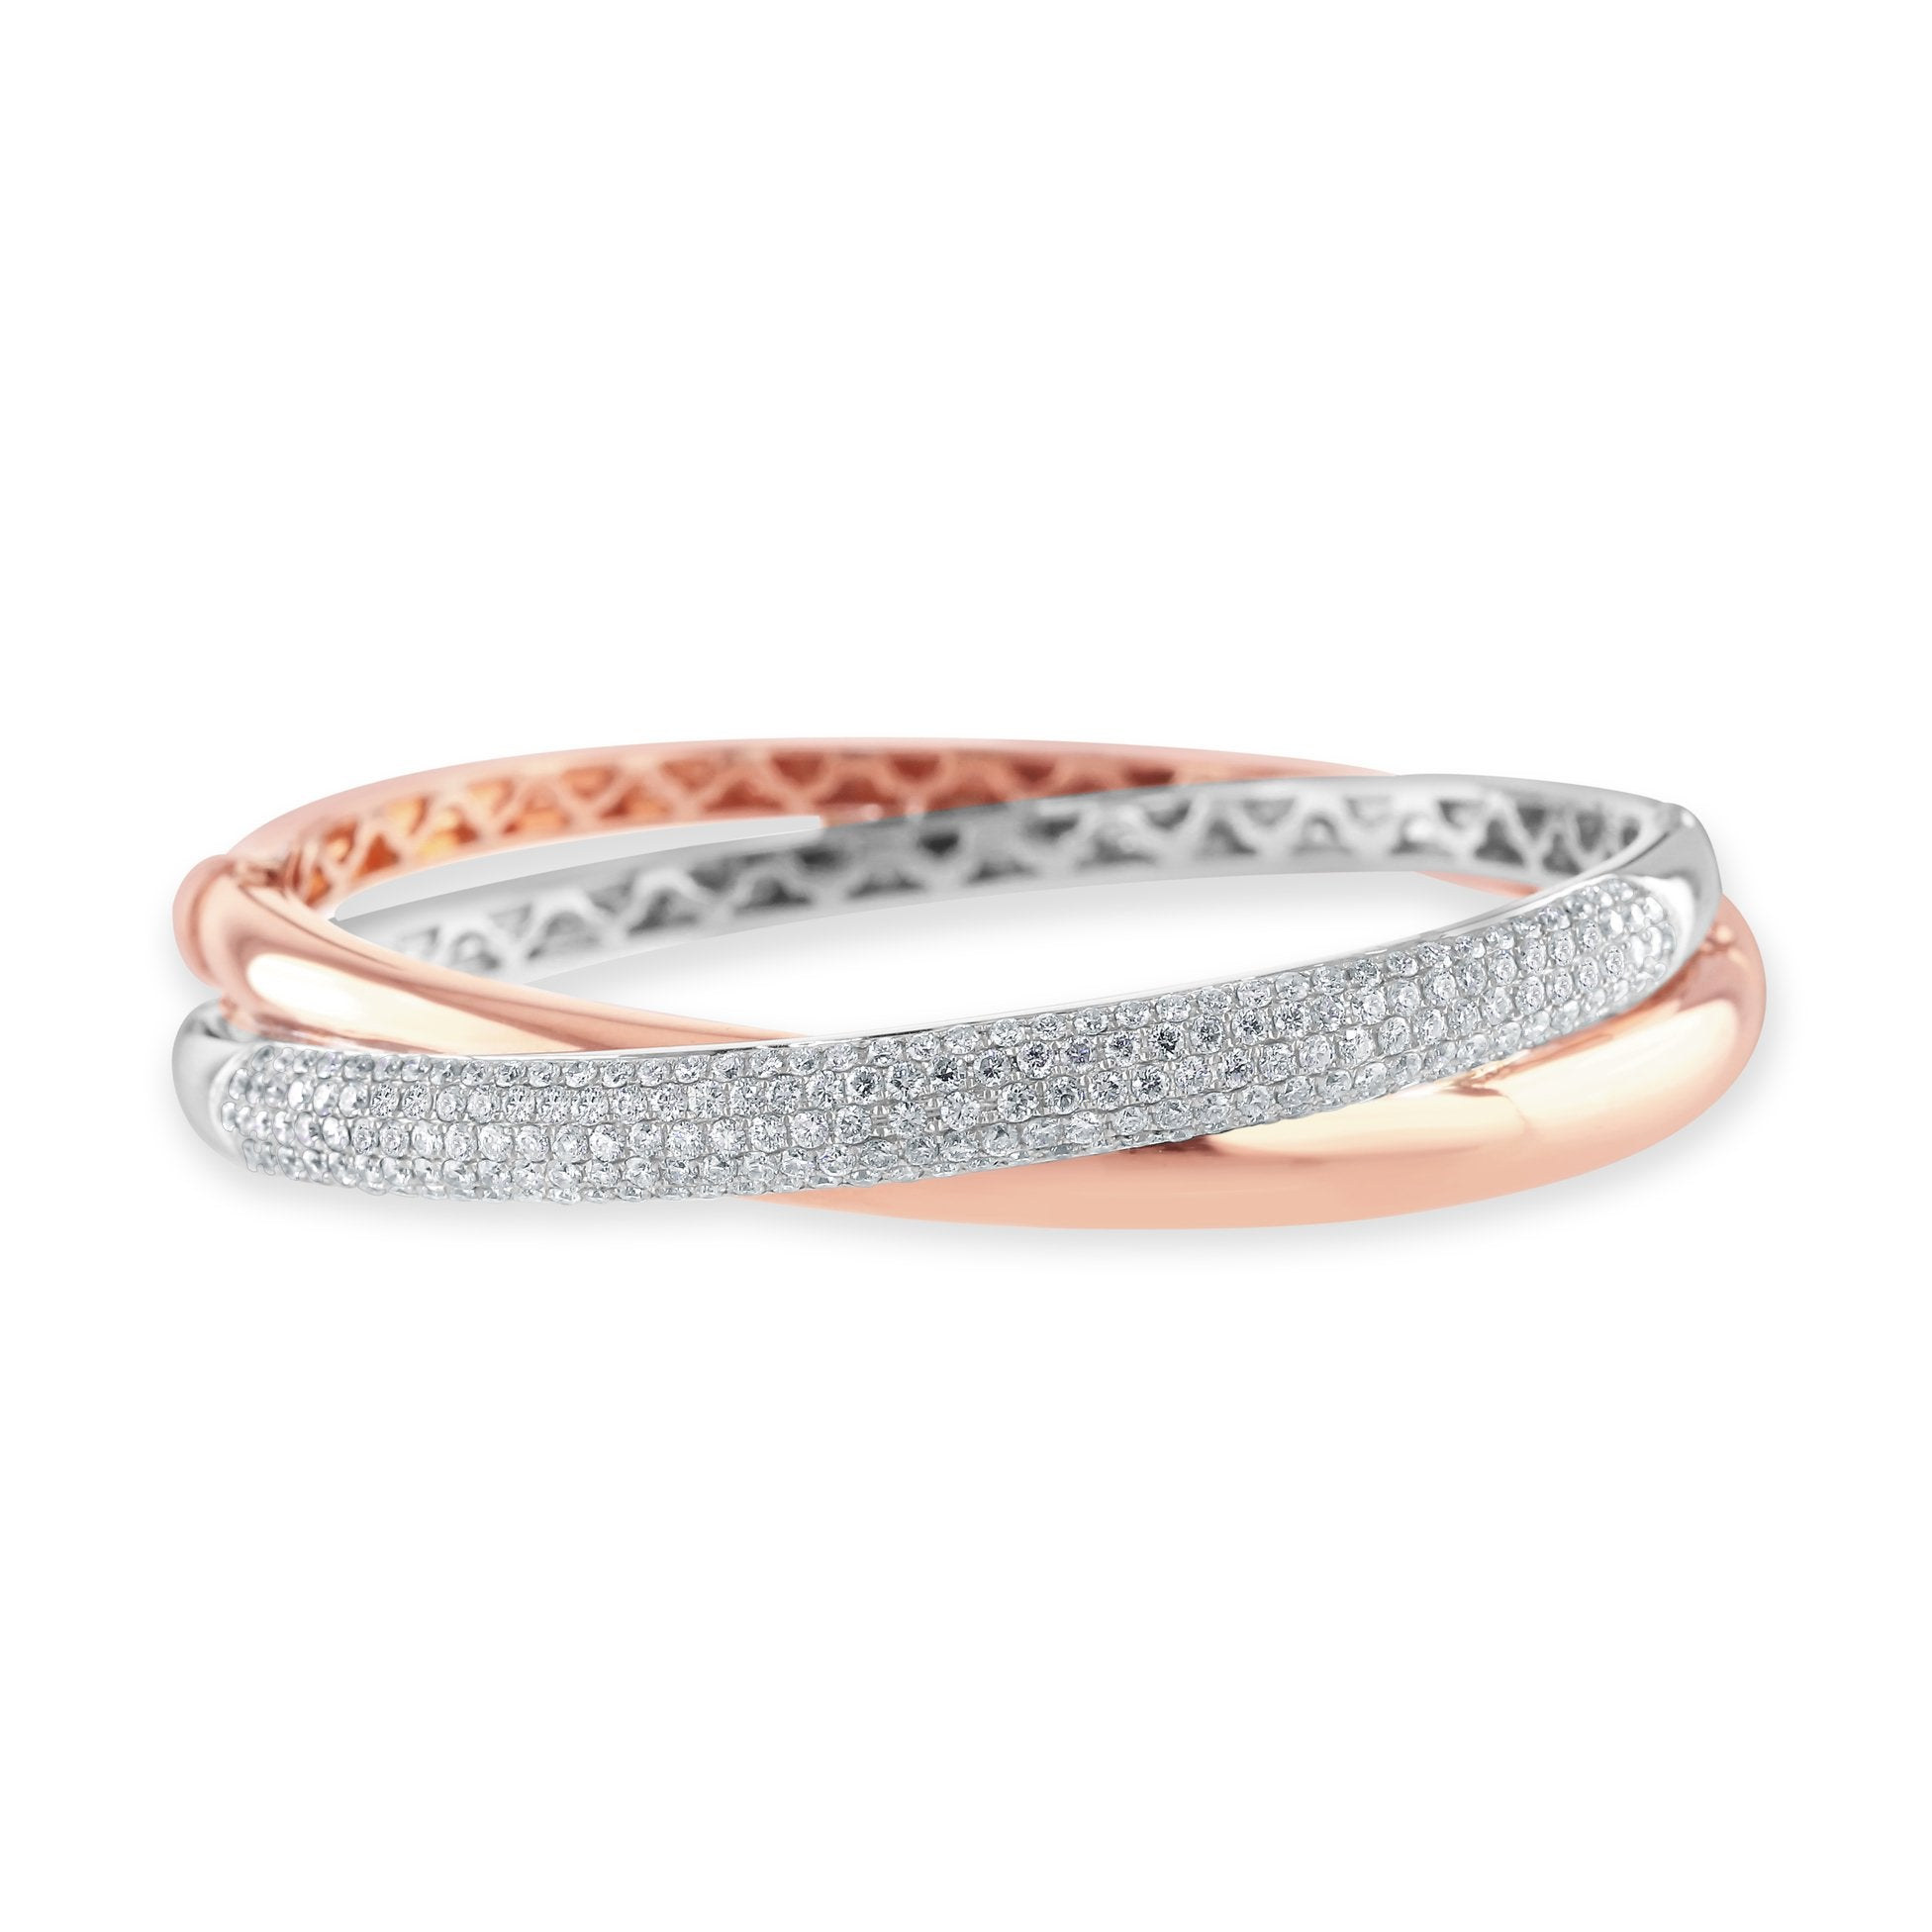 18ct White and Rose Gold Diamond Bangle